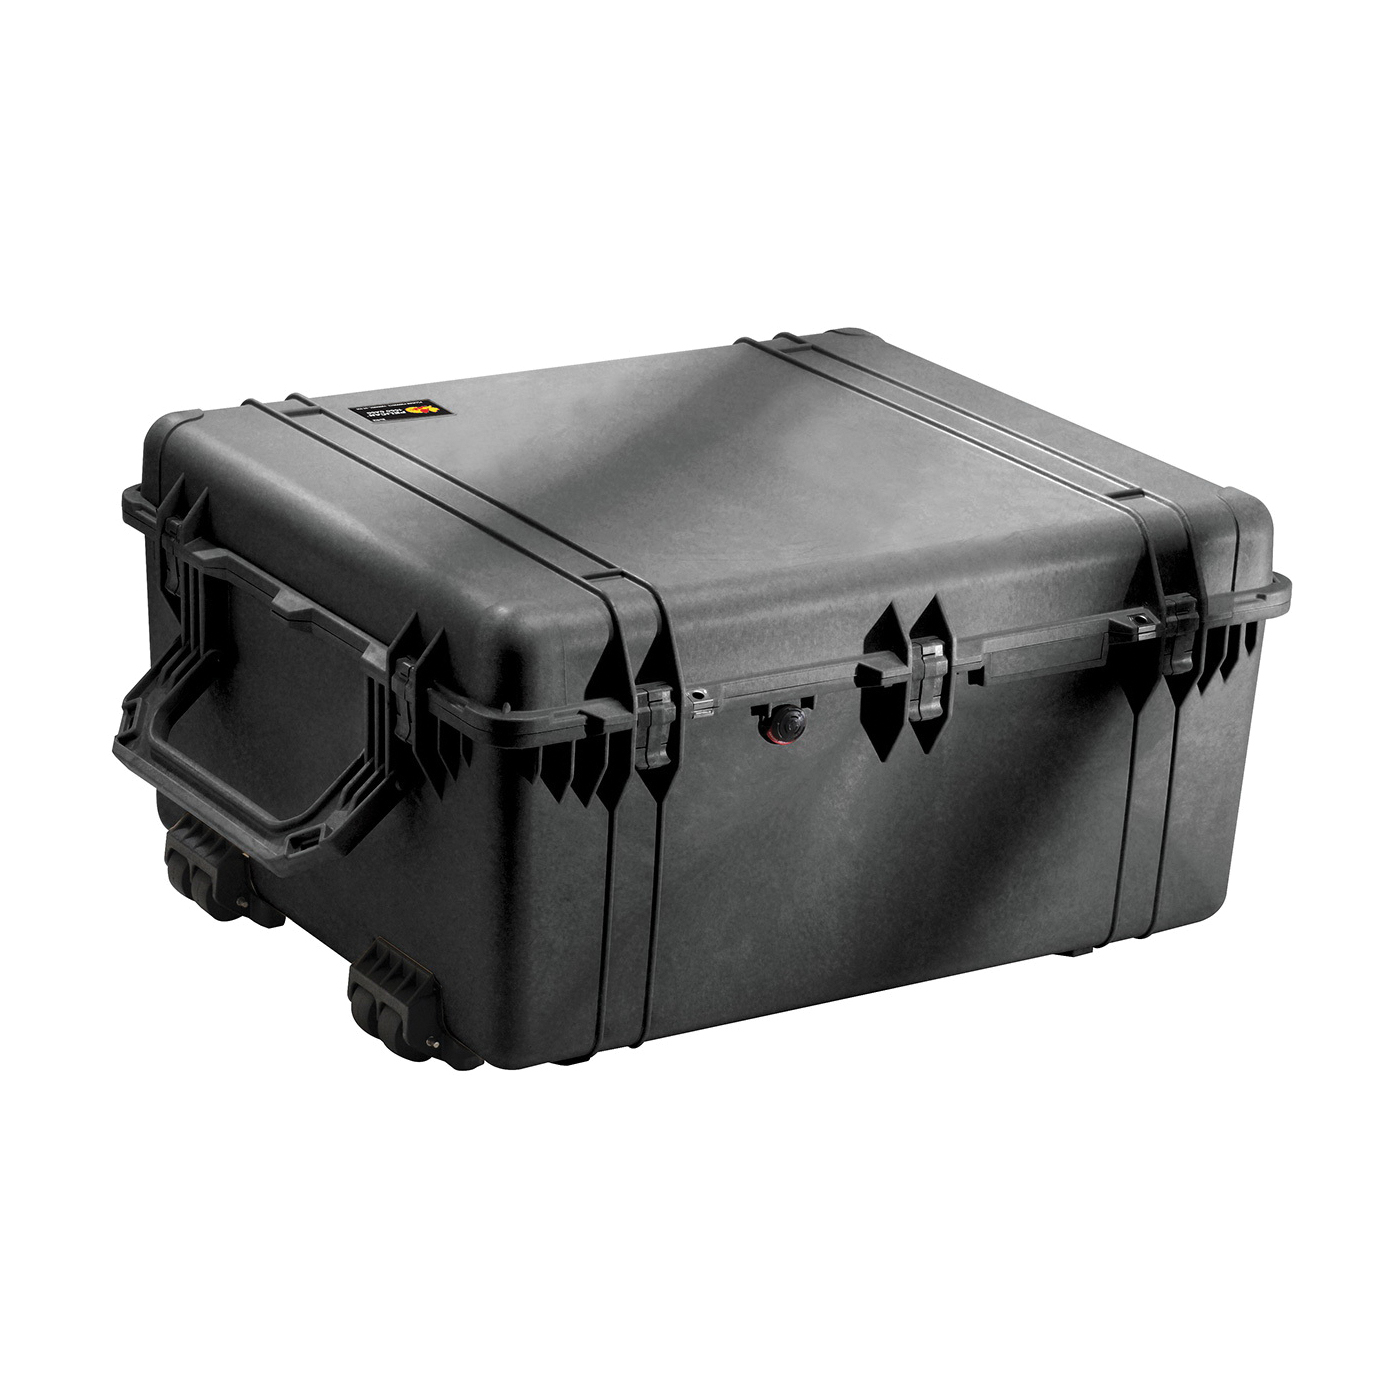 Pelican™ PROTECTOR CASE™ 1550-000-110 Medium Protective Case With Foam and Lid Liner, 18.43 in L x 14 in W x 7.62 in H, 1.18 cu-ft, Polypropylene